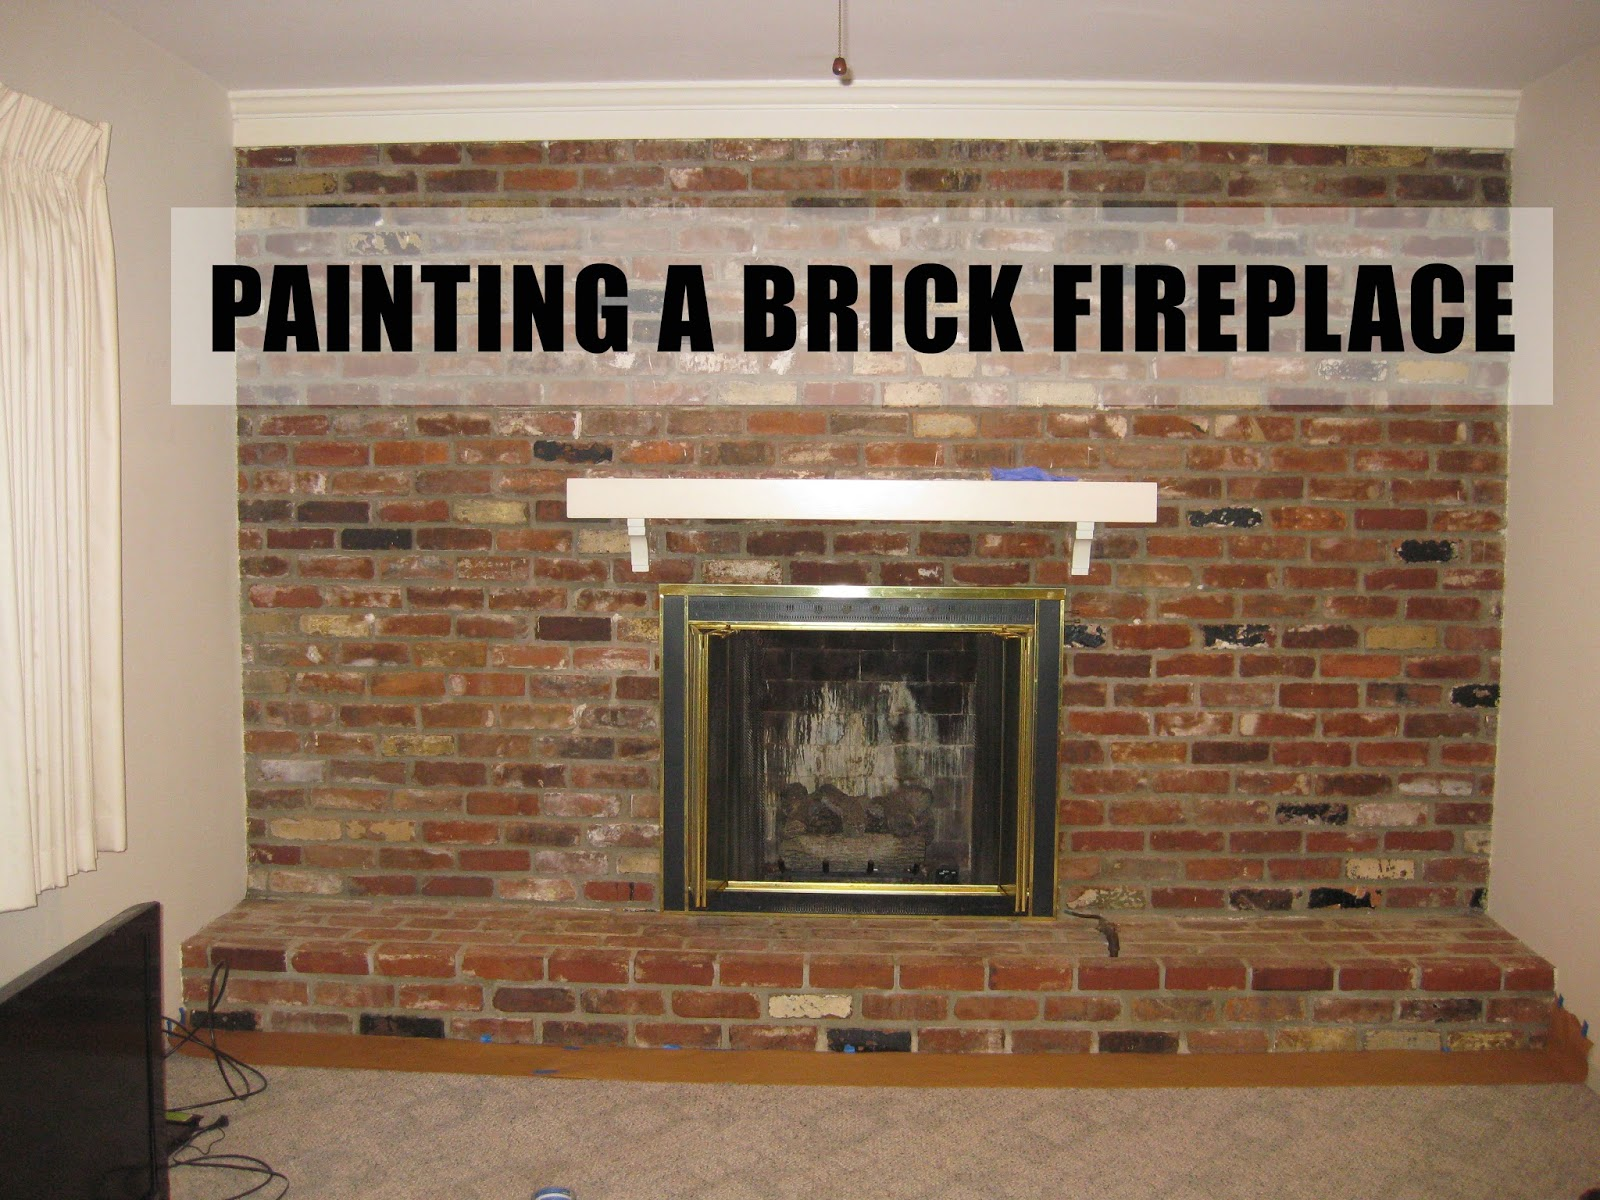 Painting A Brick Fireplace Step By Step